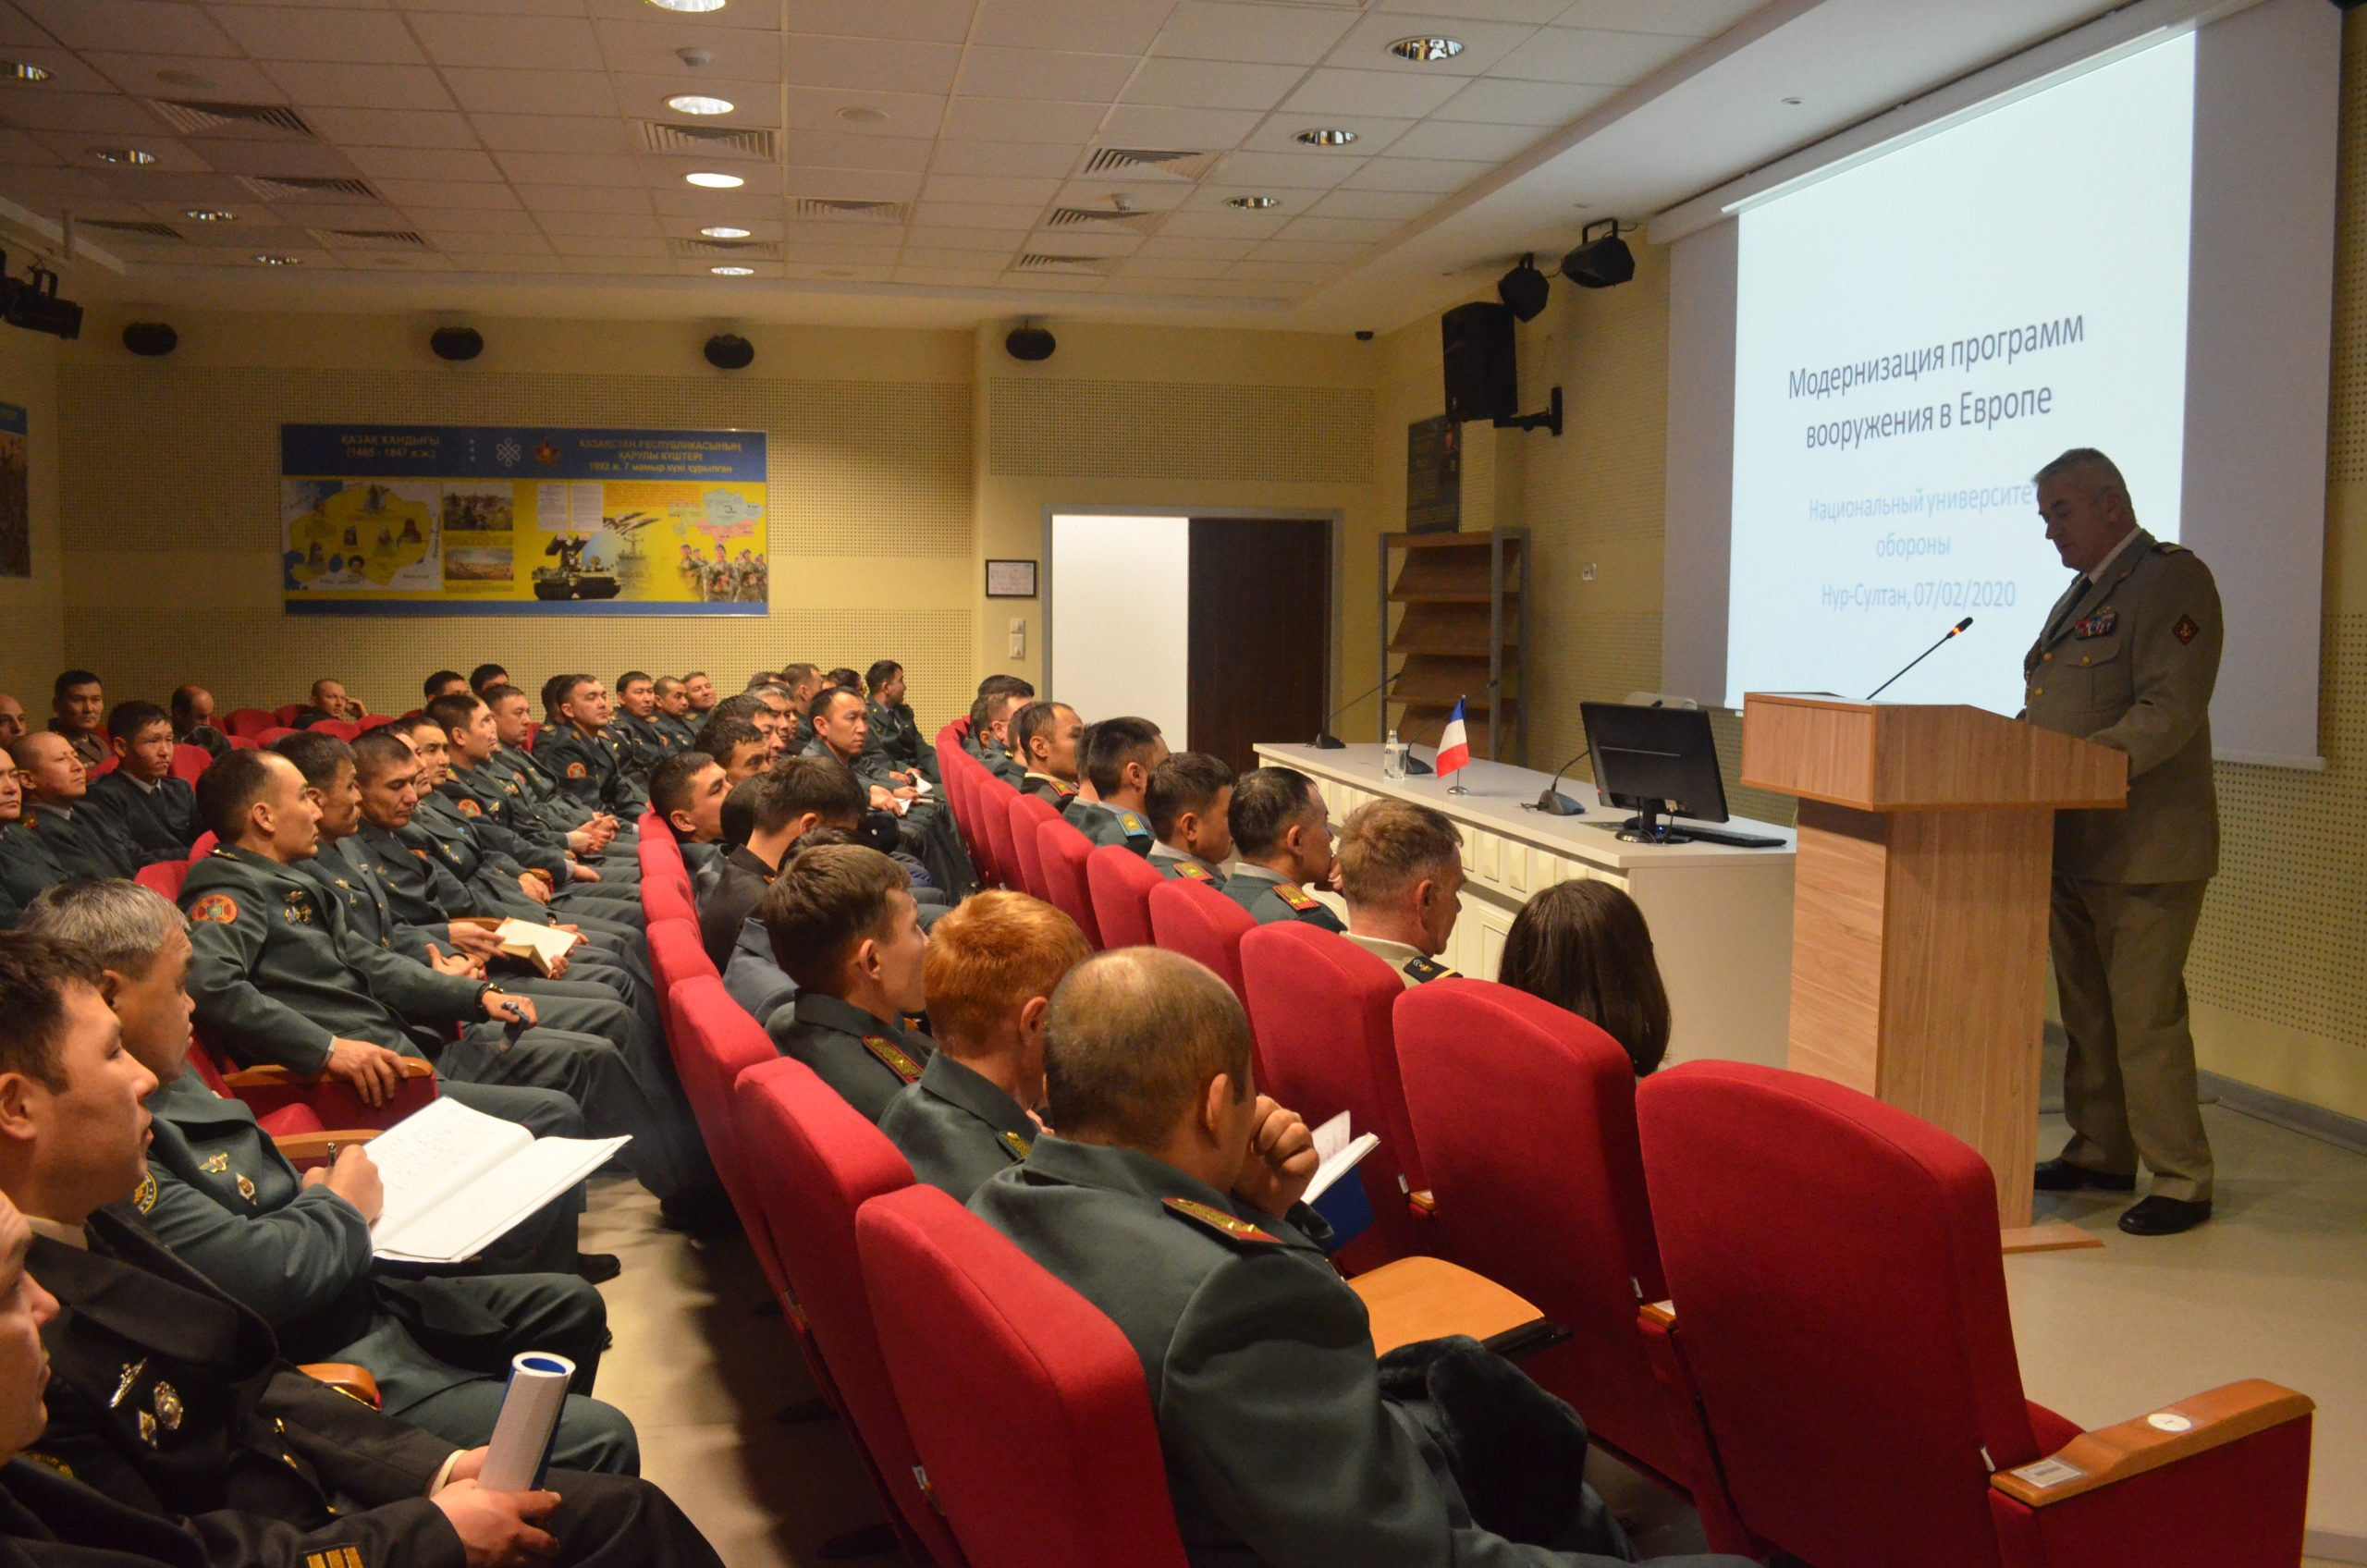 Lecture by the French military attaché in Kazakhstan, Colonel S. Samaran